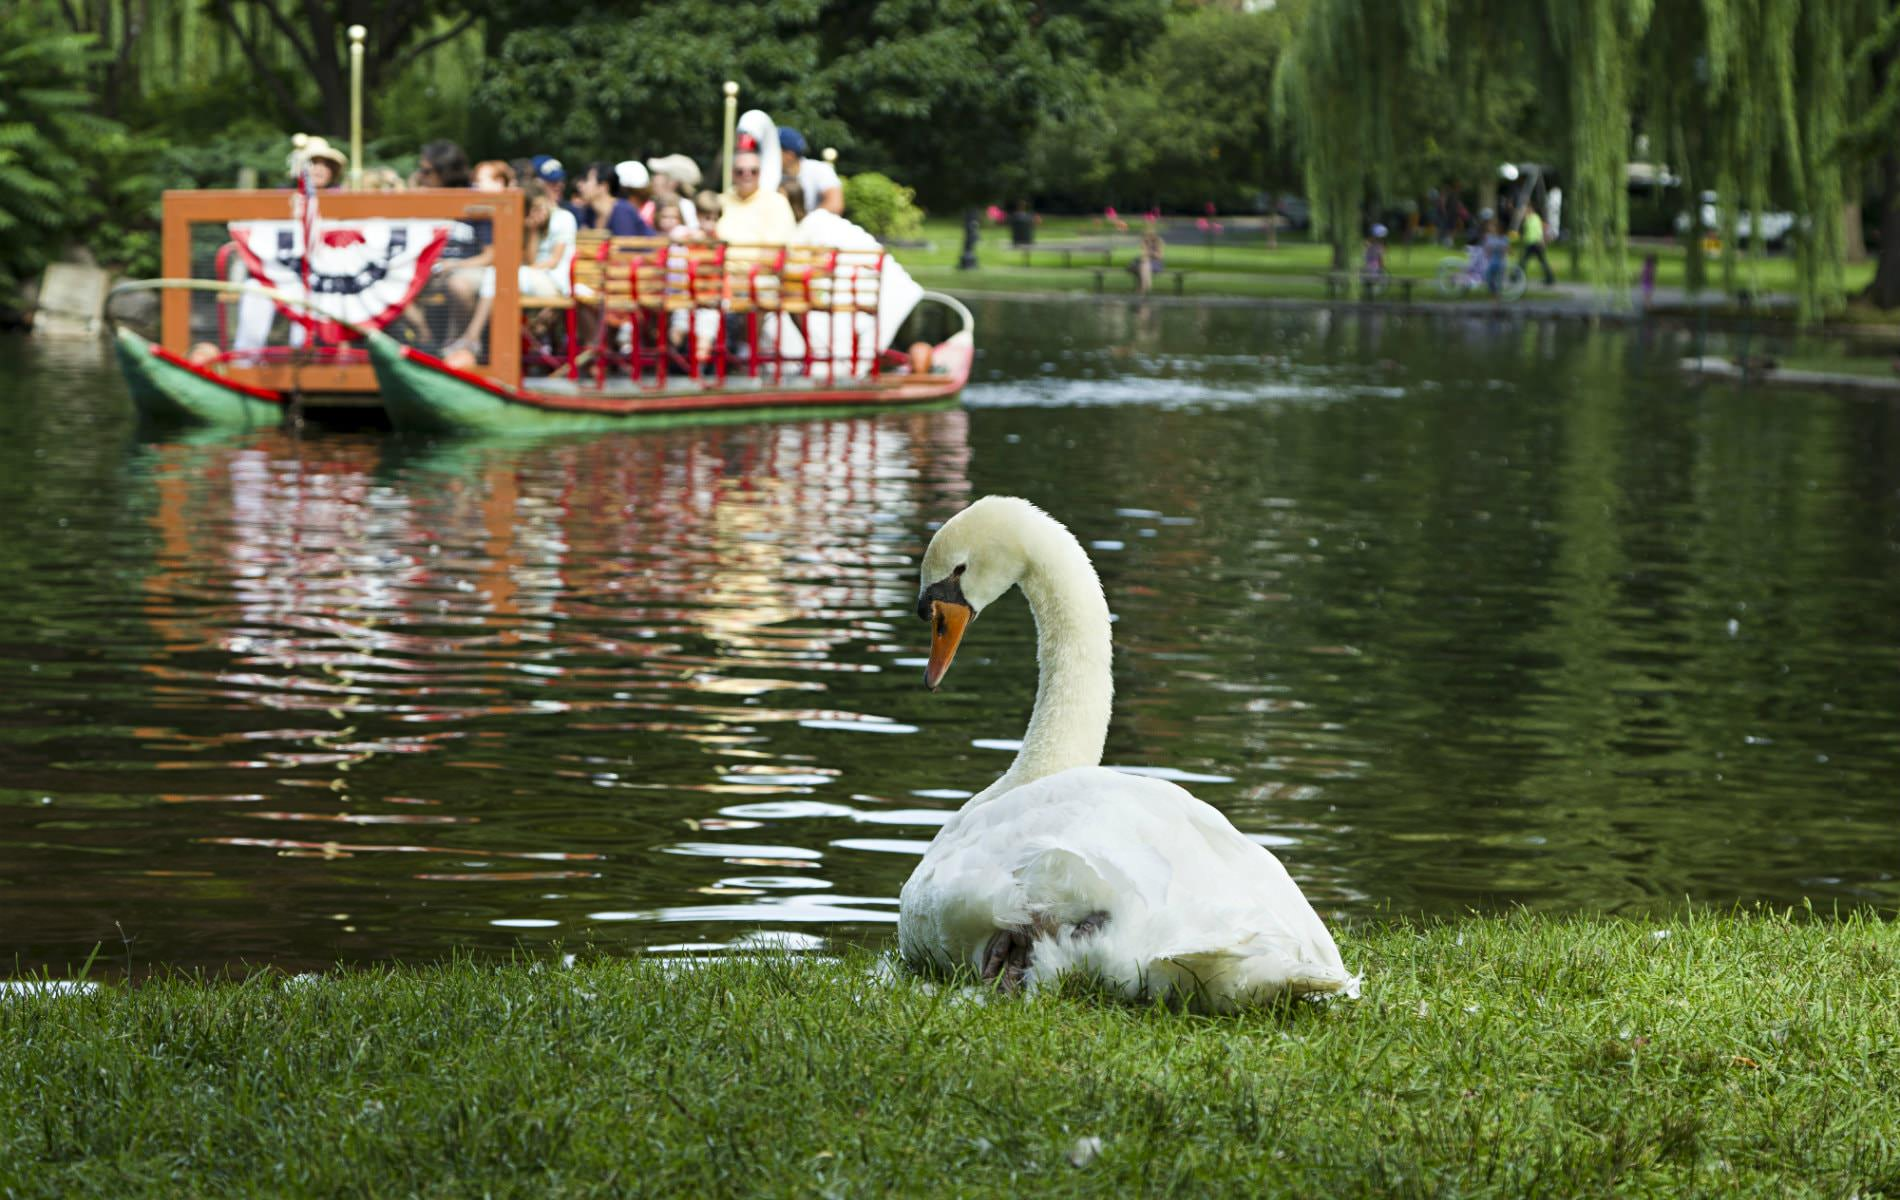 White swan lying on grass near lagoon with a swan boat paddling tourists in the background